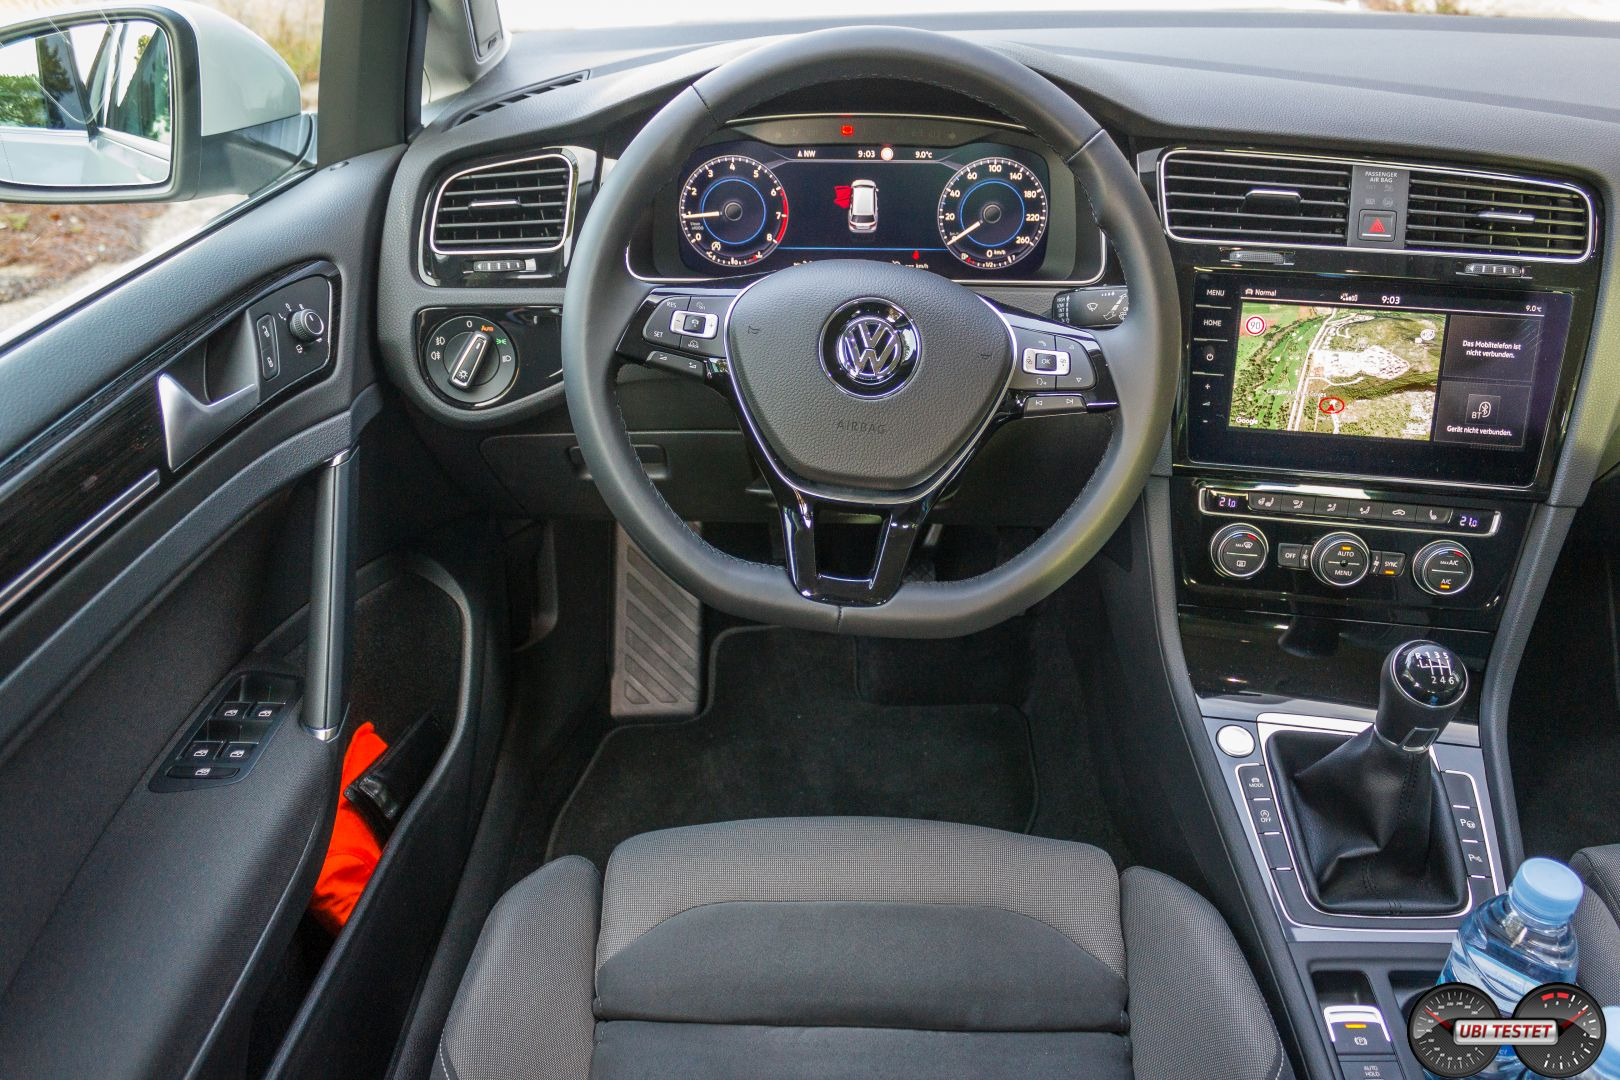 Vw golf 7 interieur 2017 ubi testet for Interieur golf 7